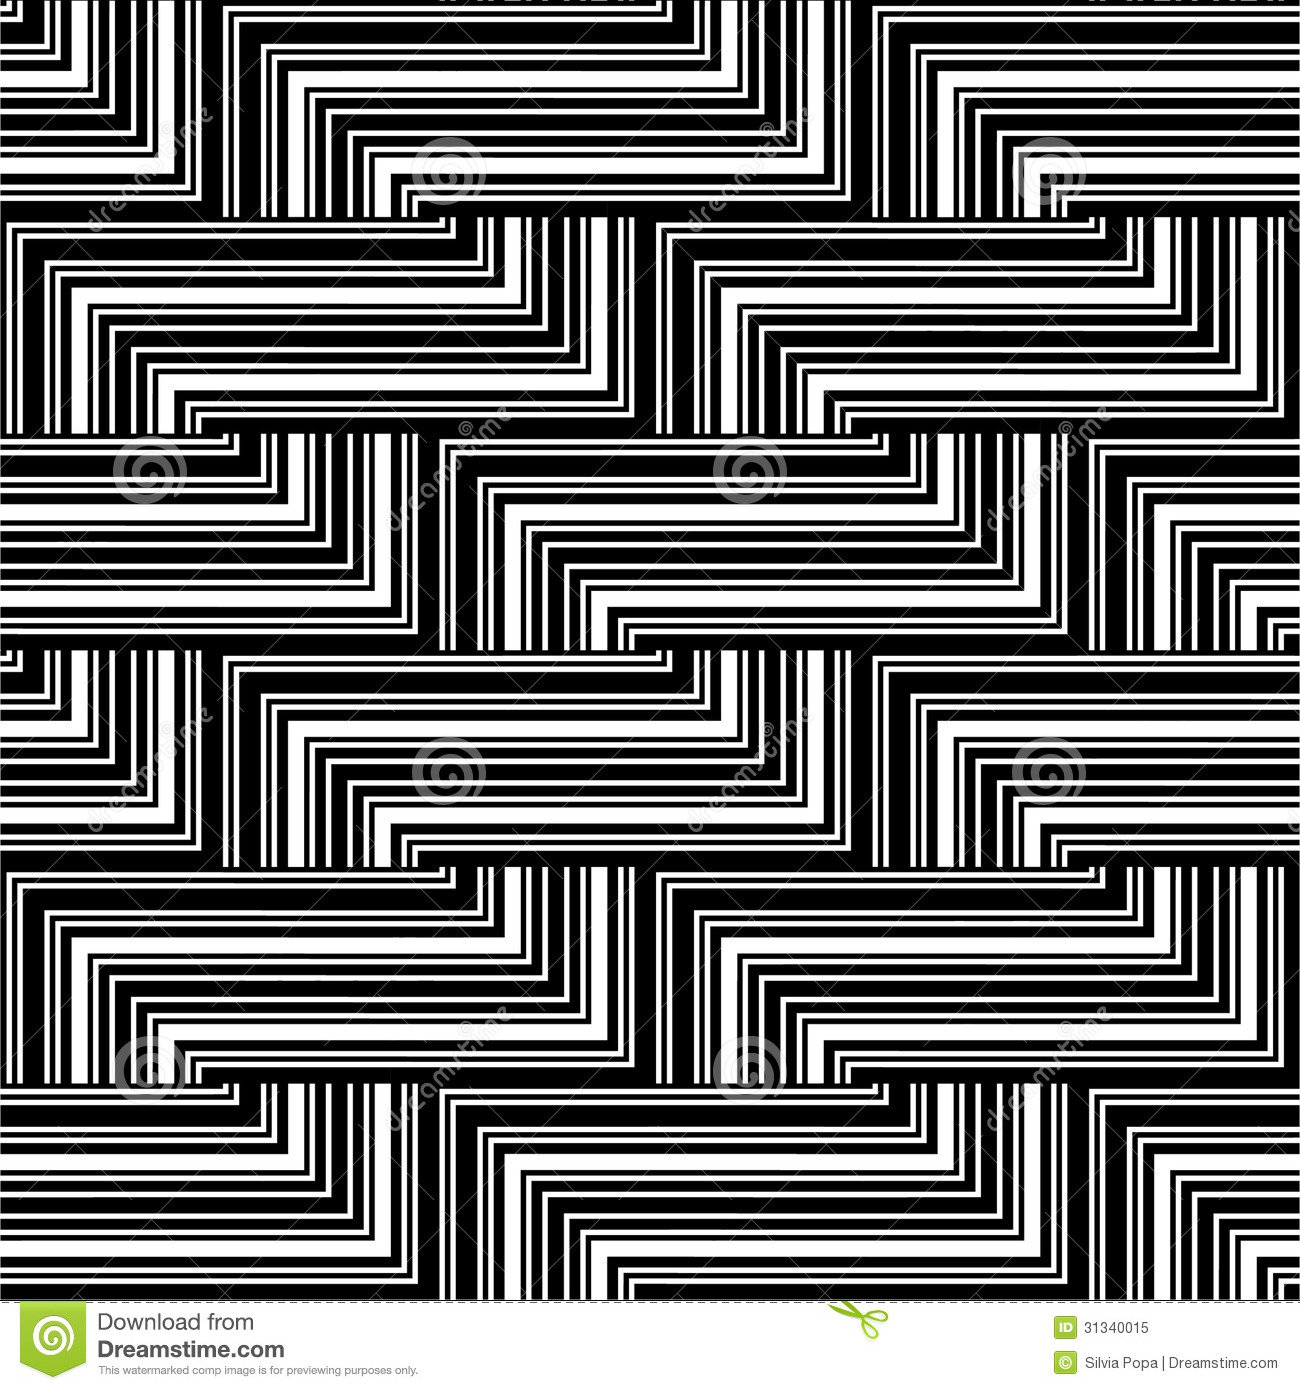 Black And White Line Designs : Black and white zigzag pattern royalty free stock photo